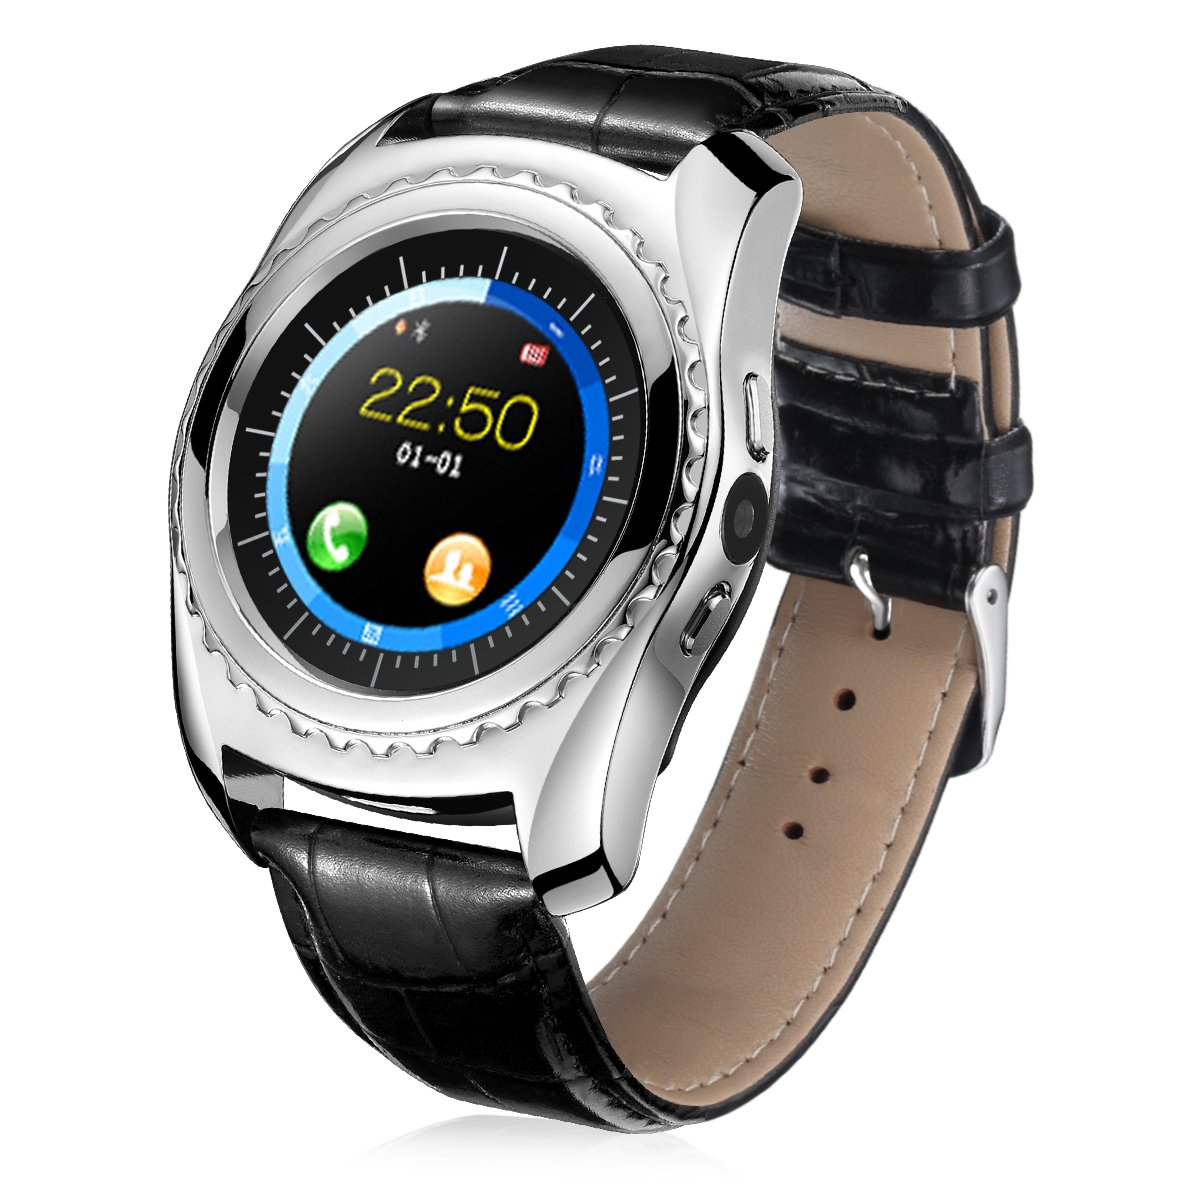 BOYA Smart watch with Sim card slot Memory card with heart rate blood pressure oxygen monitor touch screen round face pedometer for outdoor Sport experise health Camera Leather band (Silver)